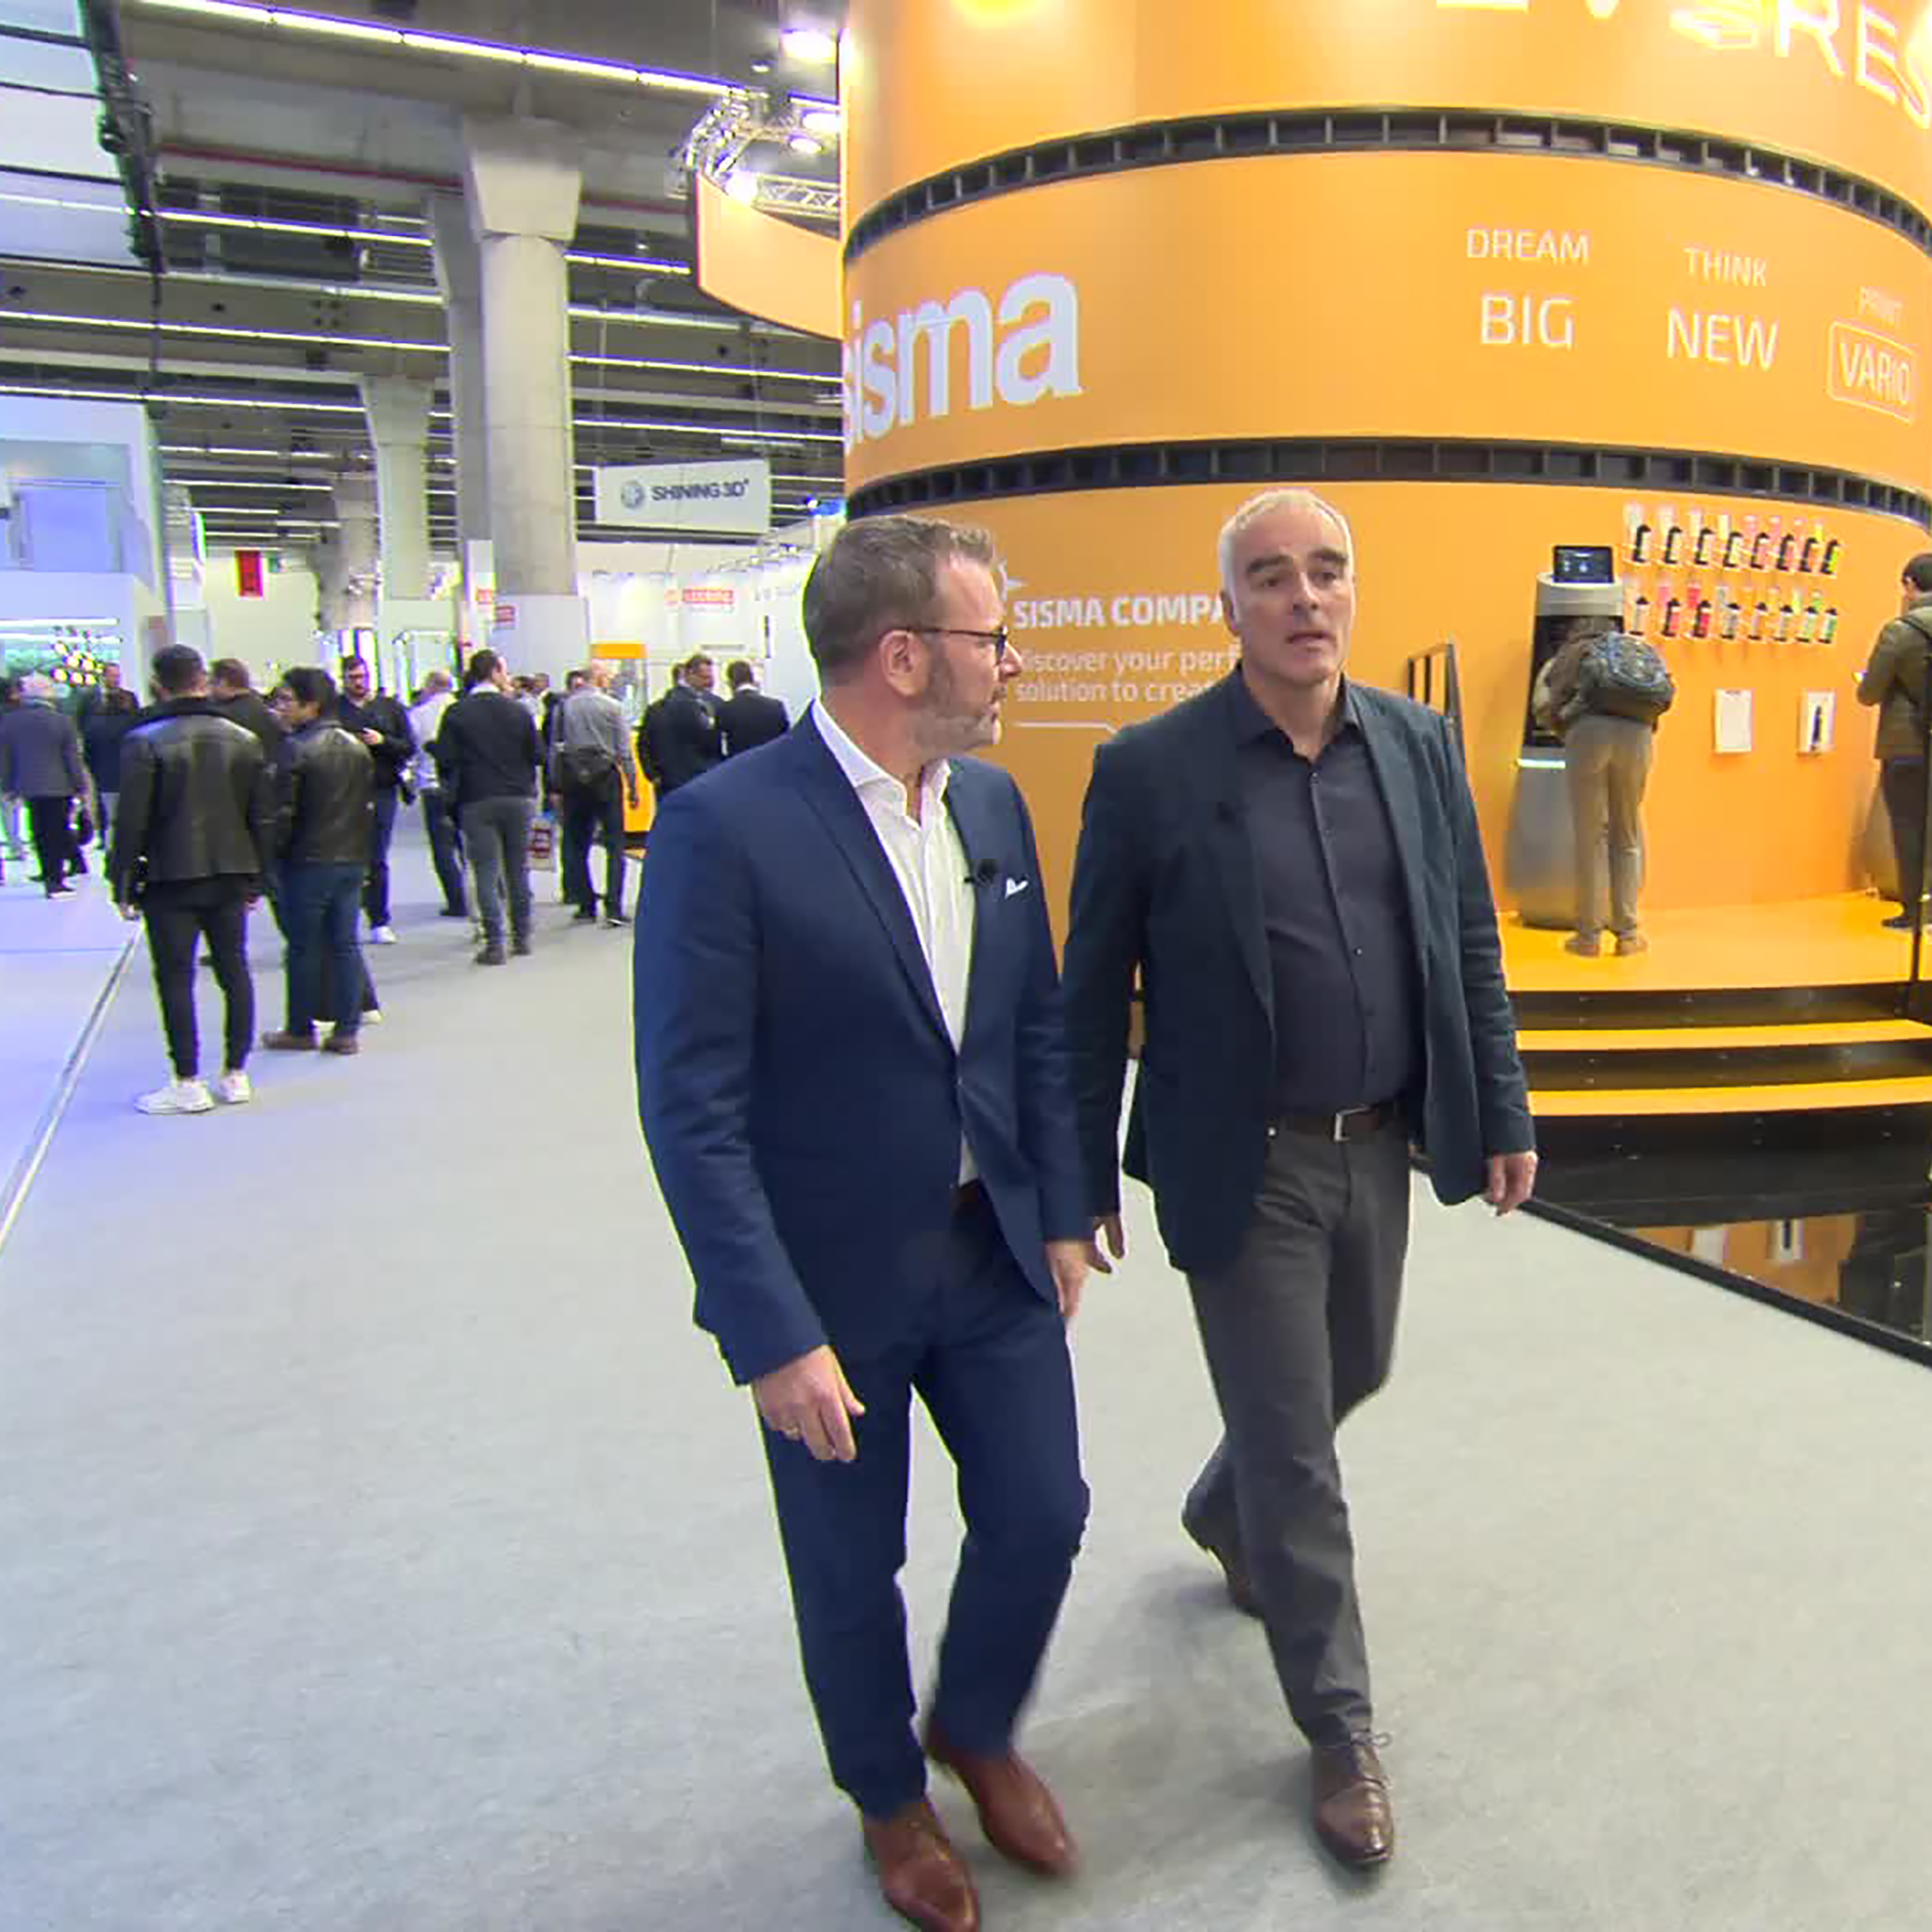 Showfloor Tour with Prof. Dr. Steffen Ritter